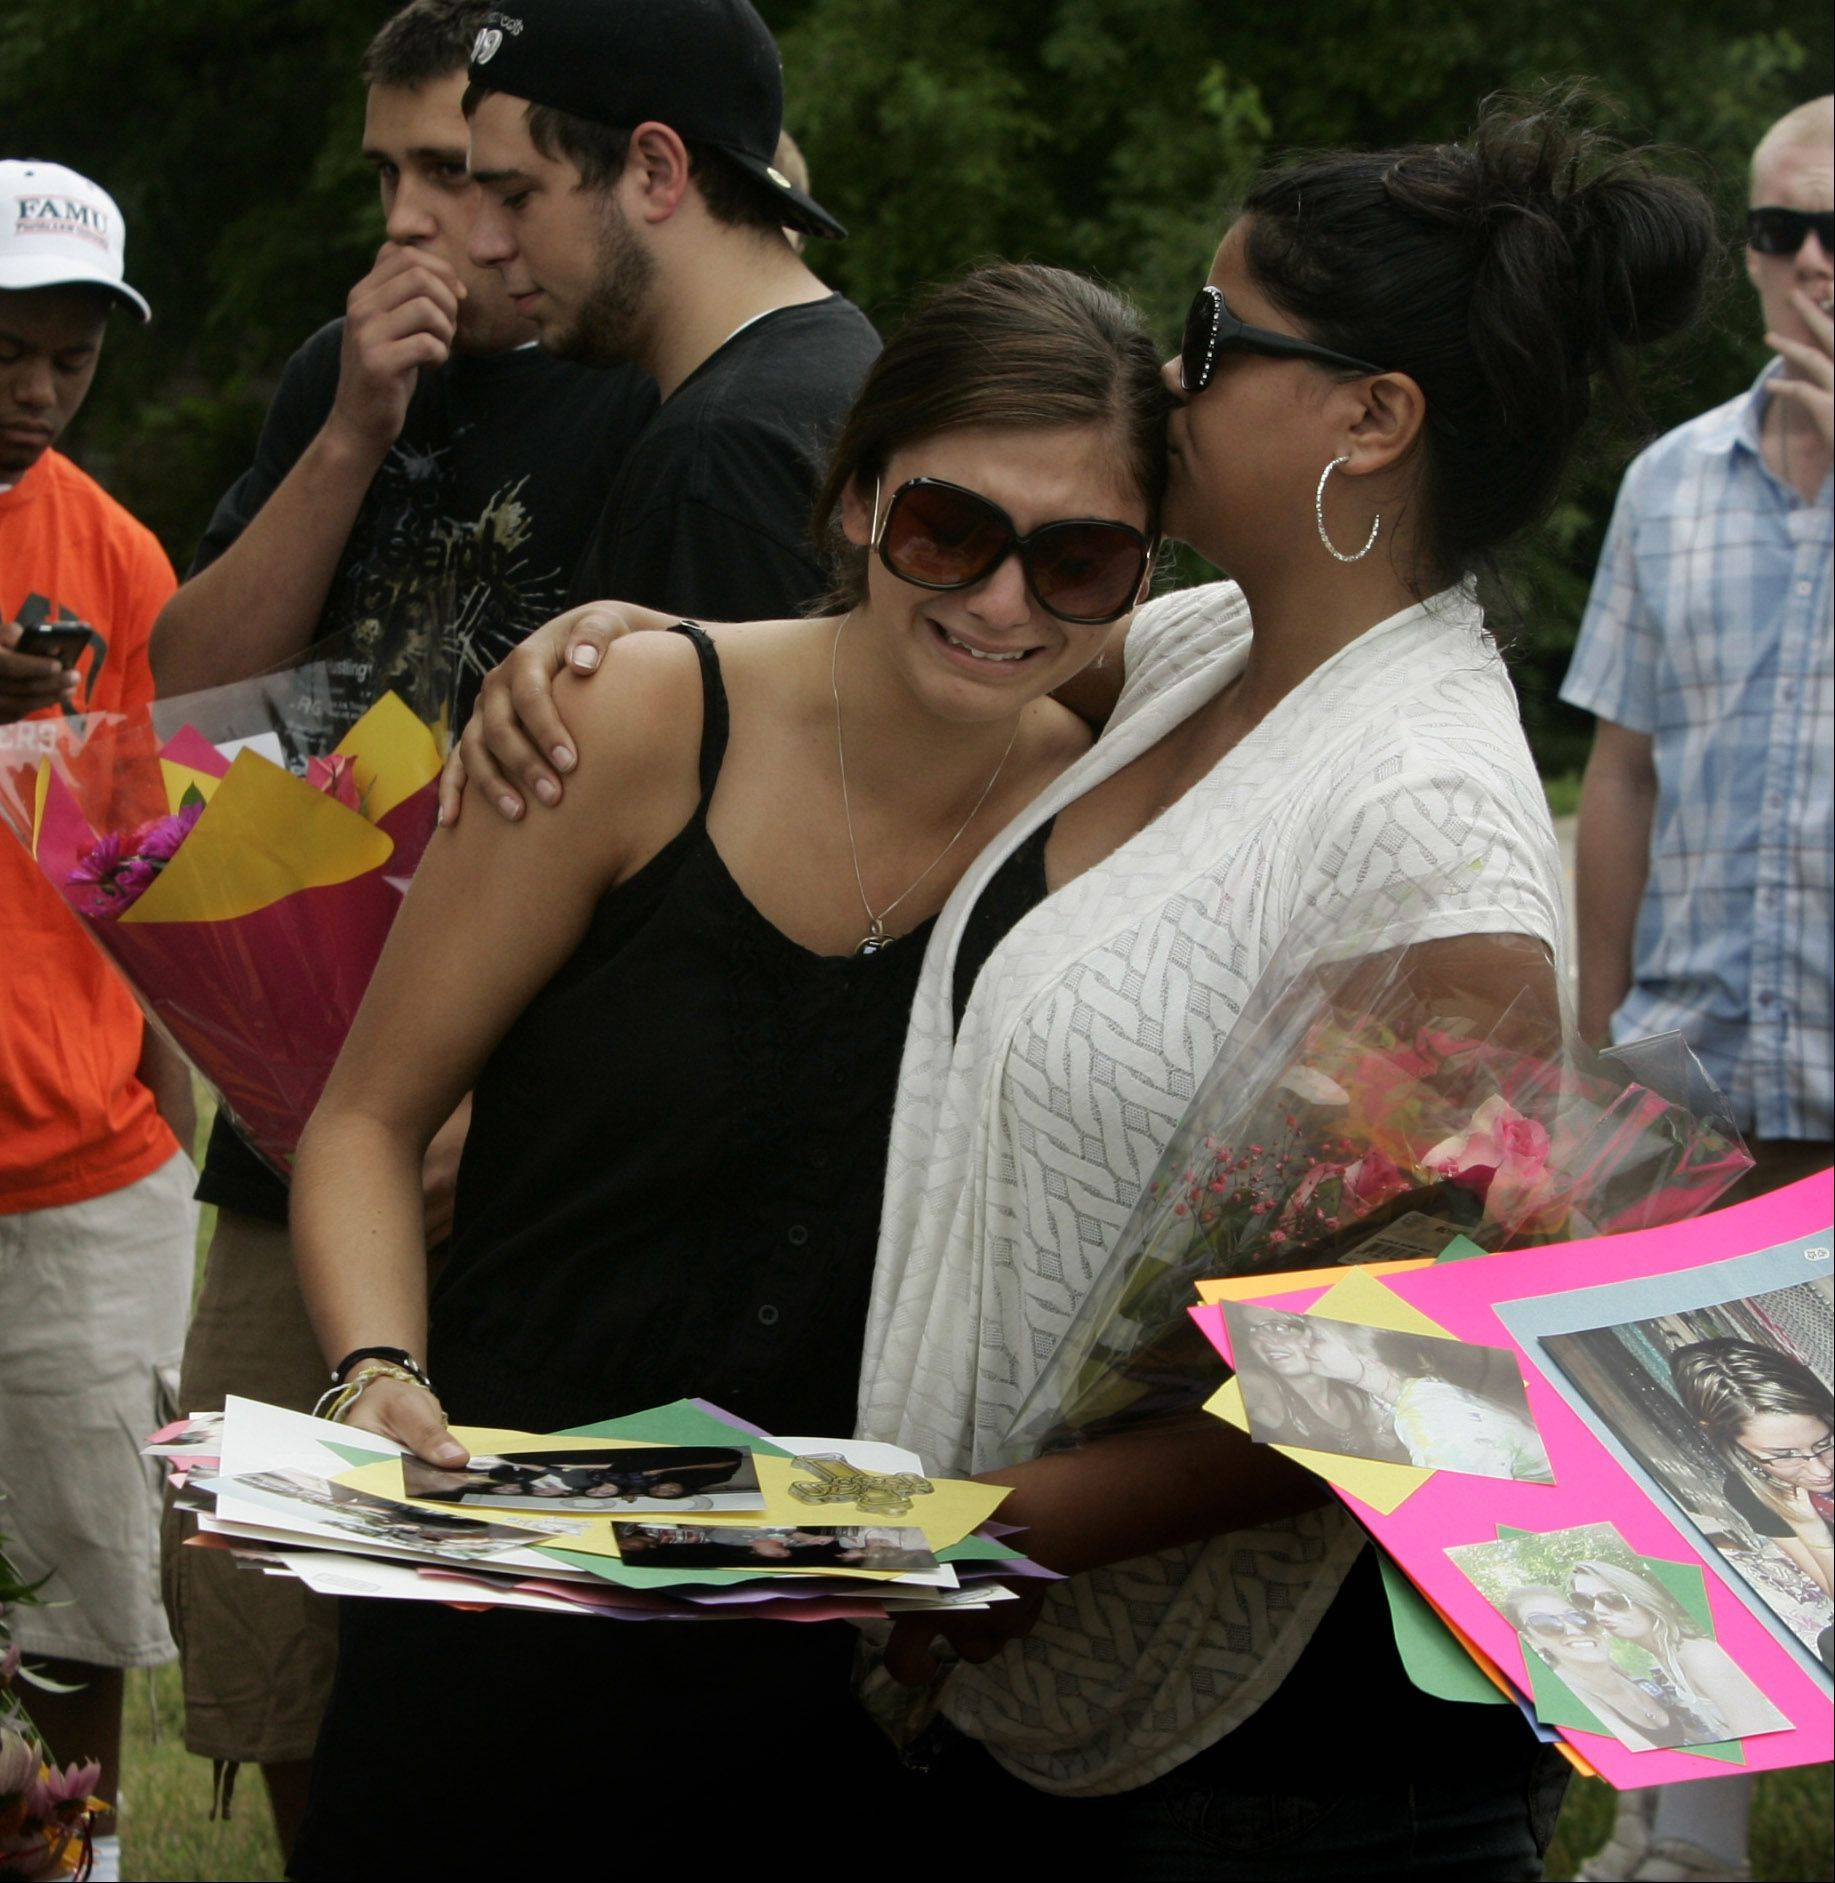 Dana Lebron, right, comforts Kara Sprinkle as friends and family gather and march in the Lake Zurich Alpine Festival parade Sunday in memory of hit-and-run victim Gabriella Drozdz. Drozdz, of Lake Zurich, was killed by someone driving an SUV Friday night as she and two other friends were walking along Church Street on their way to Alpine Fest community festival.